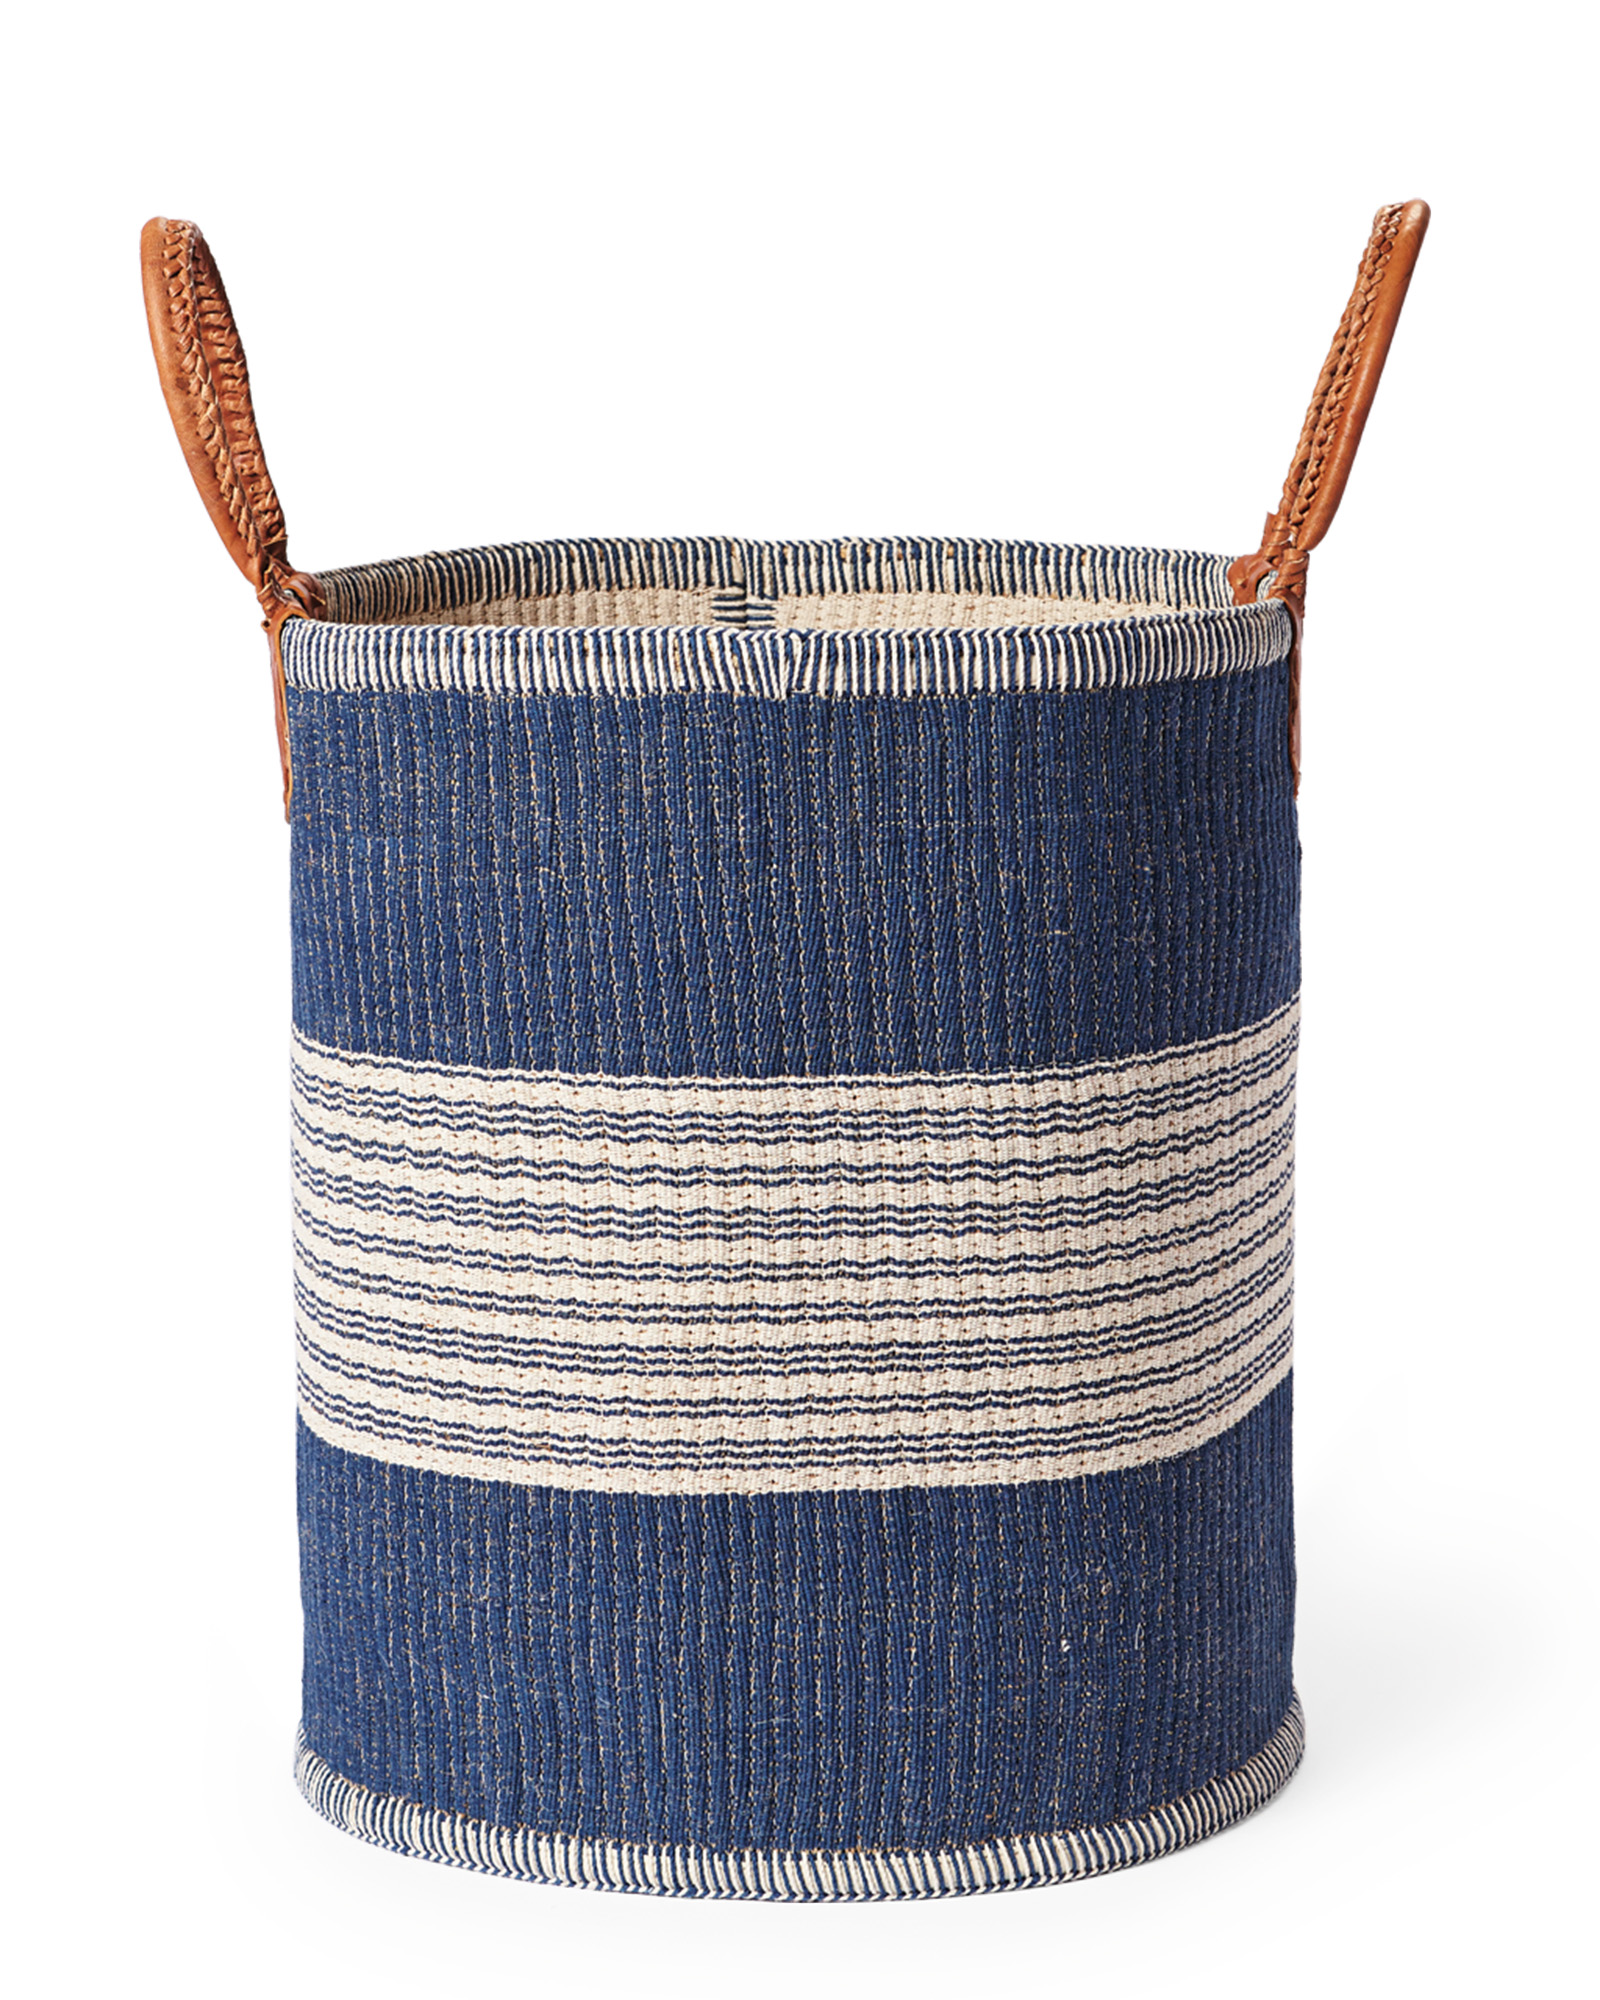 Huntington Basket, Indigo